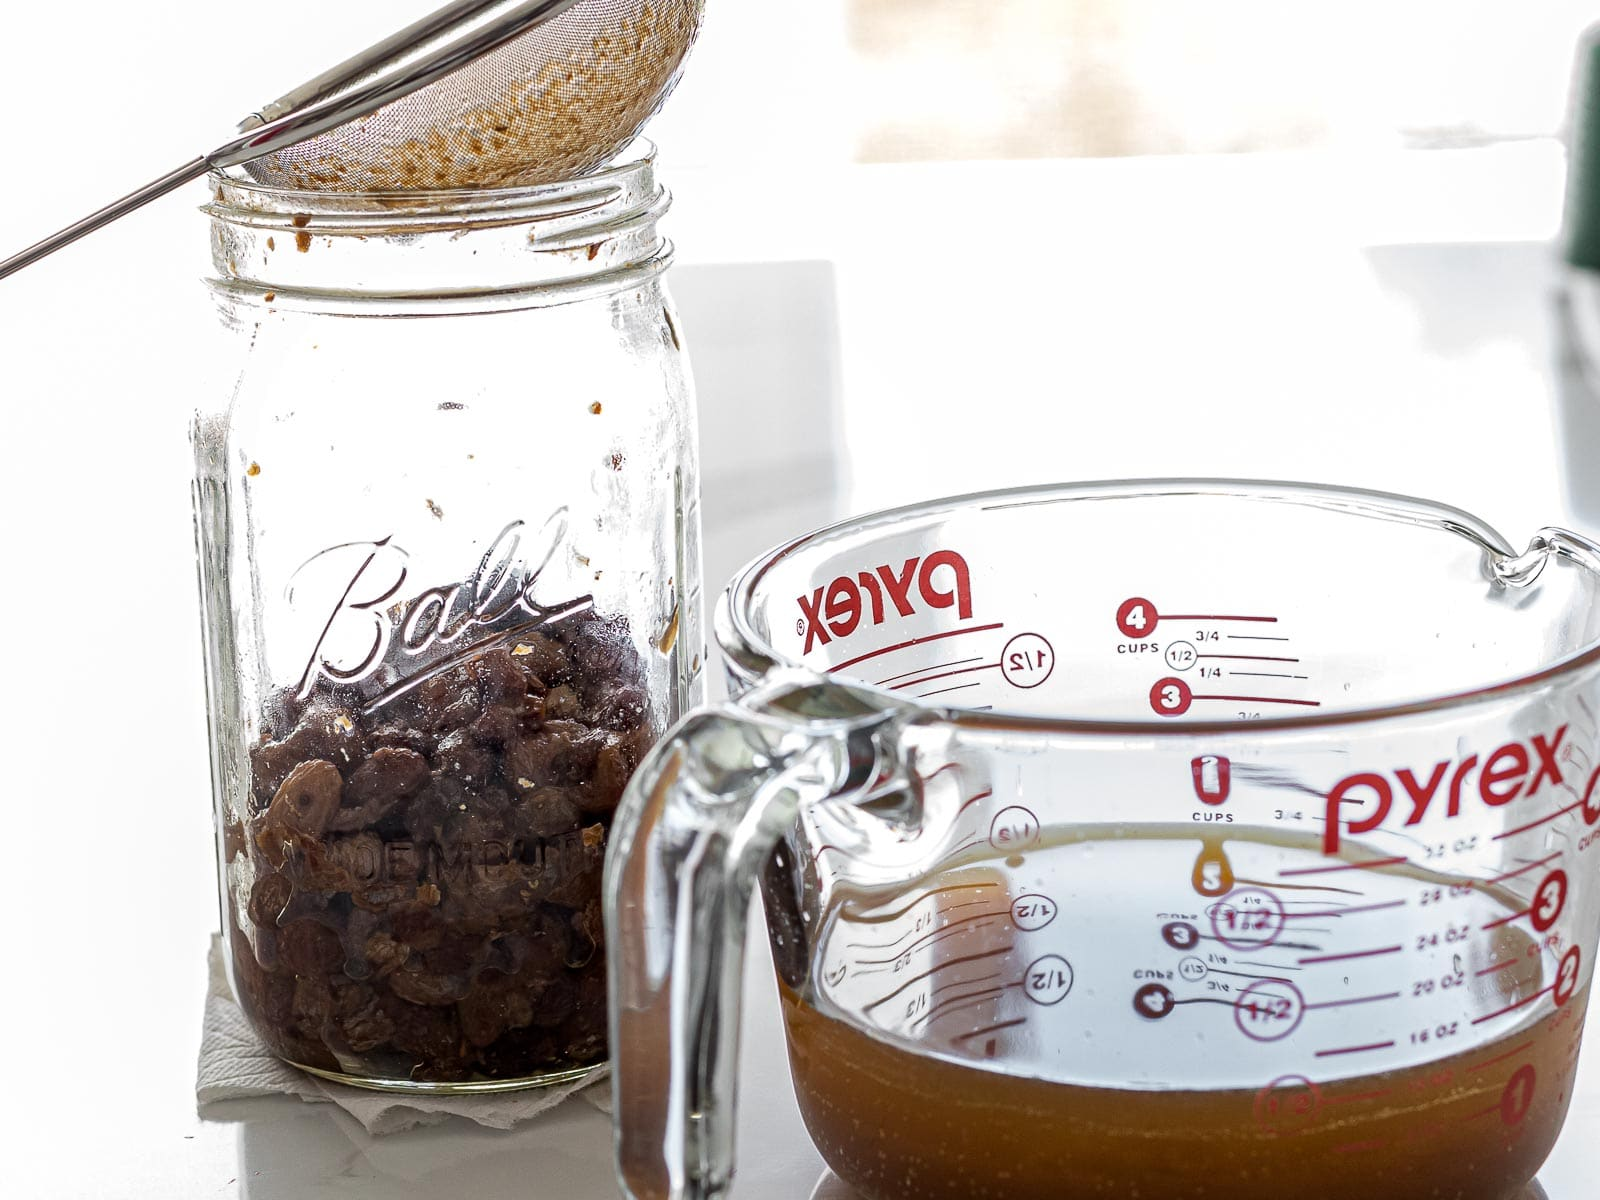 raisin yeast water strained with a mesh strainer and filled in a measuring cup